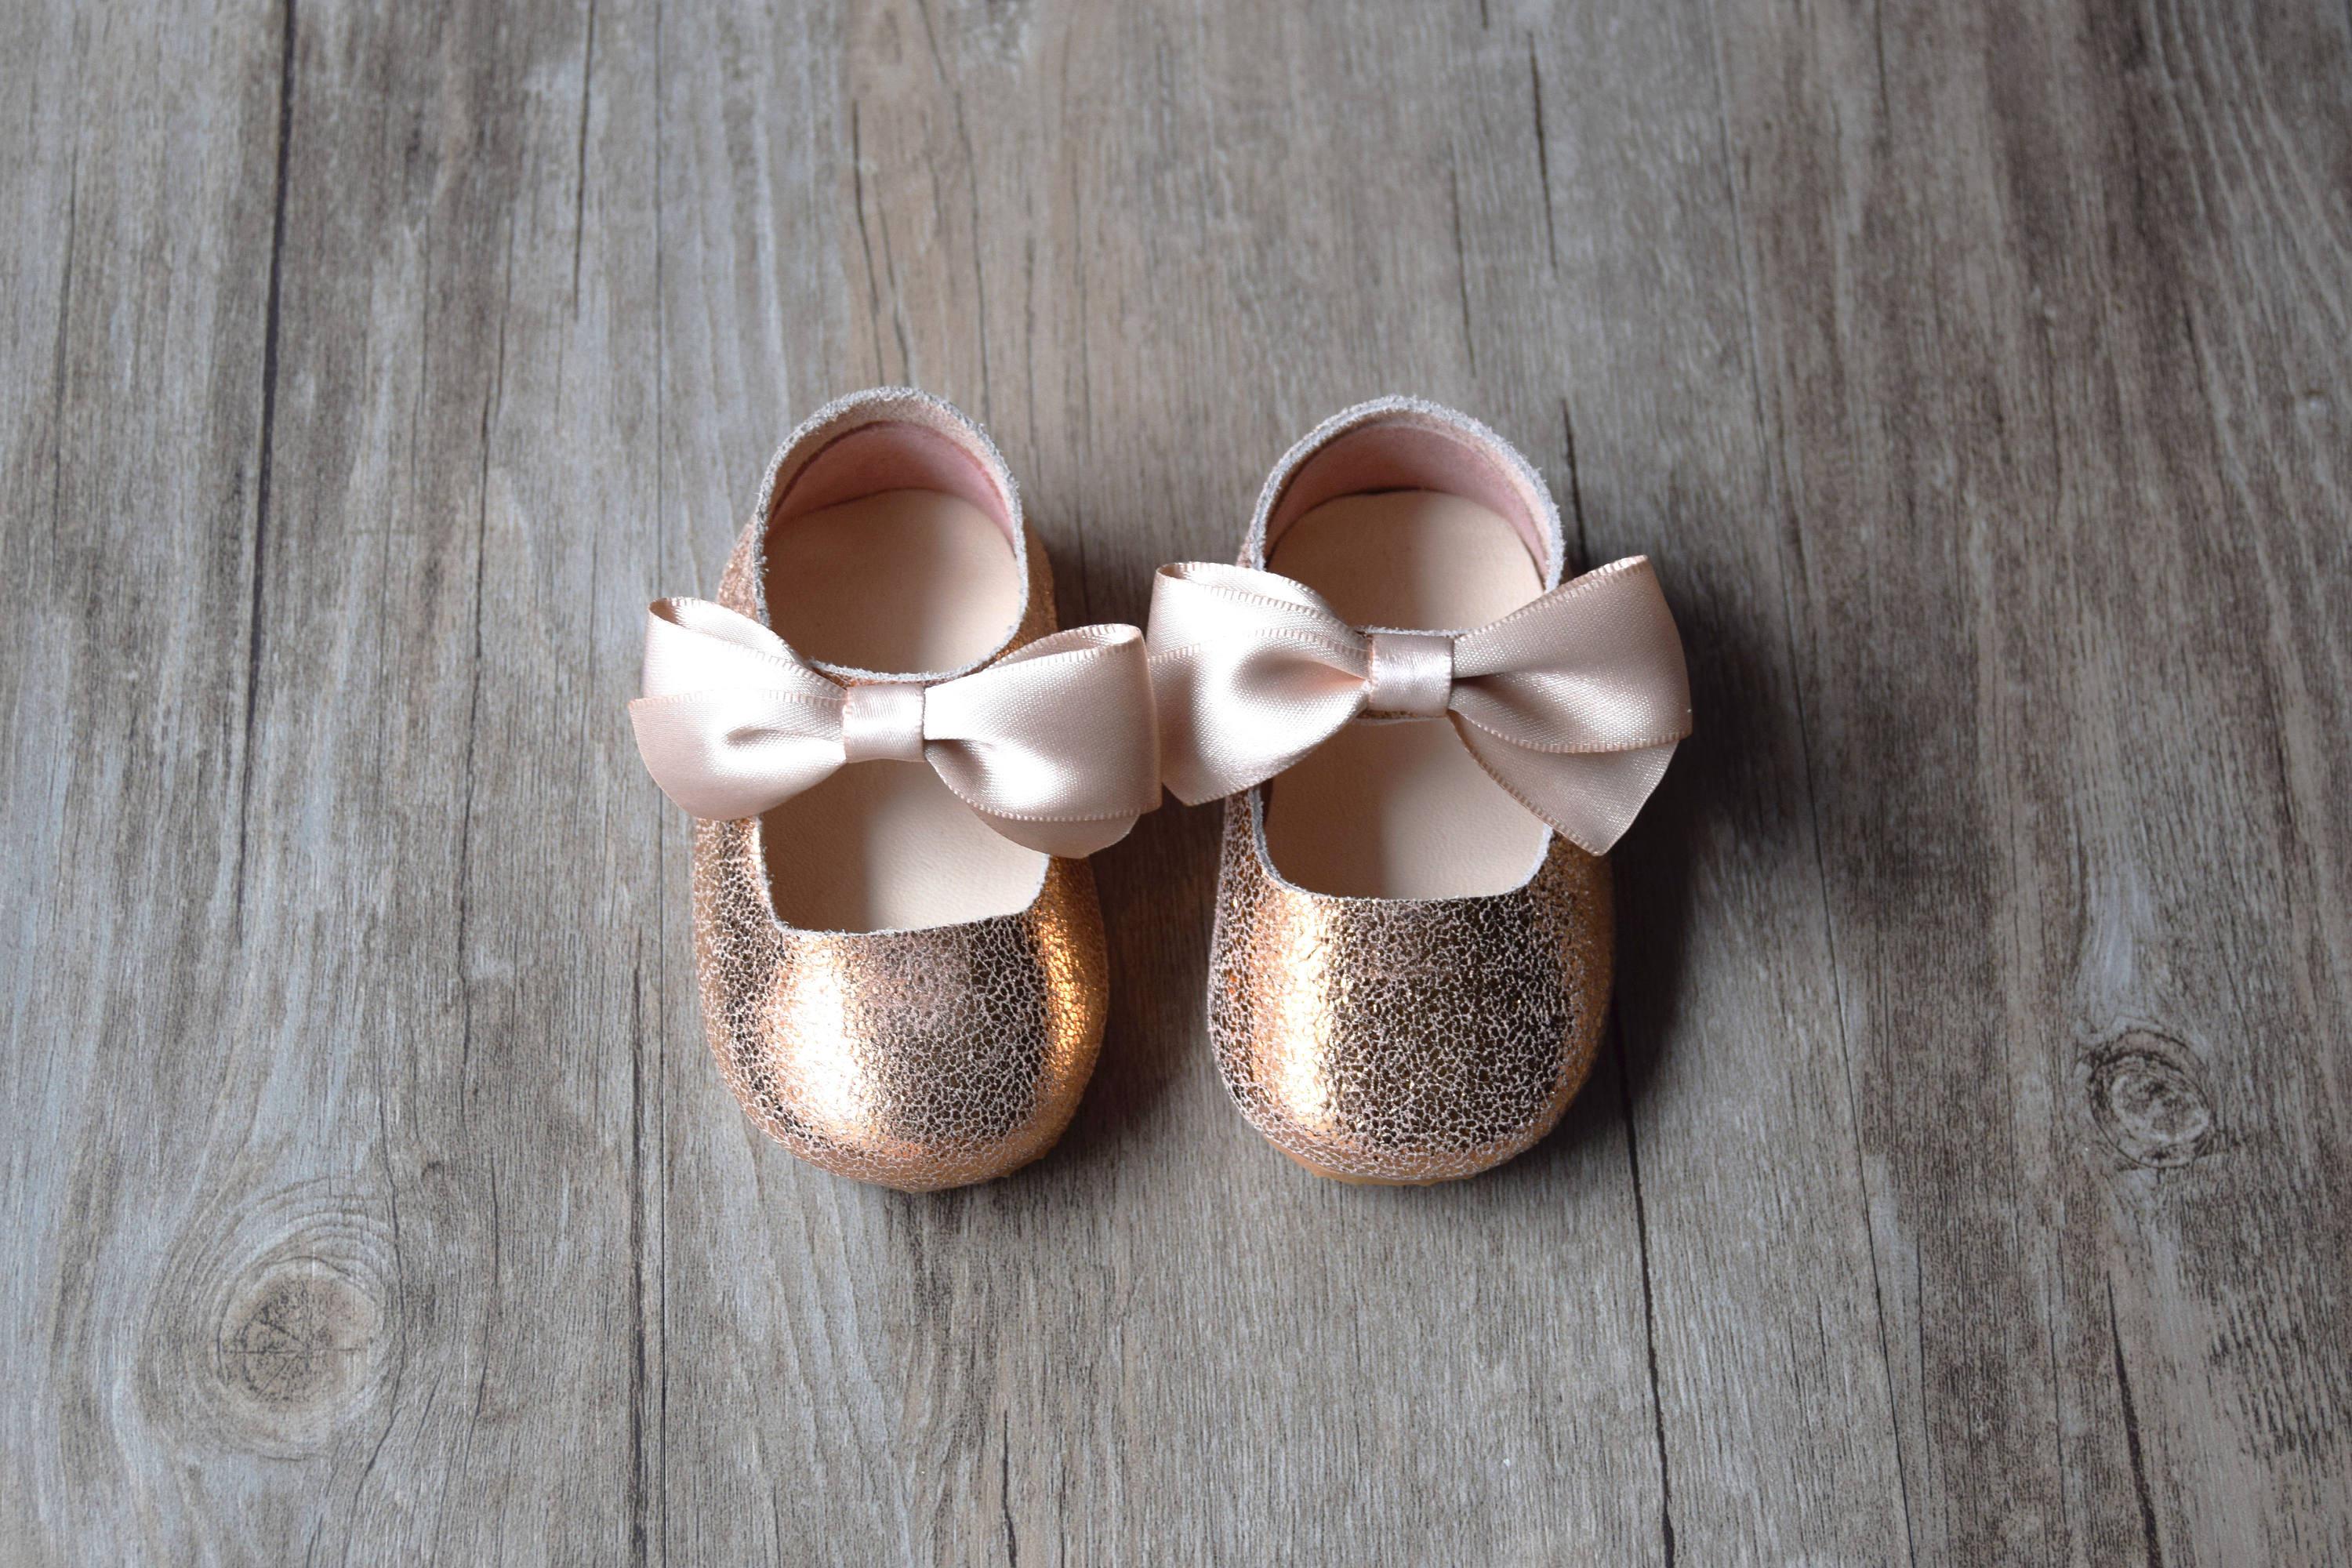 Flower Shop Near Me Toddler Flower Girl Shoes Flower Shop